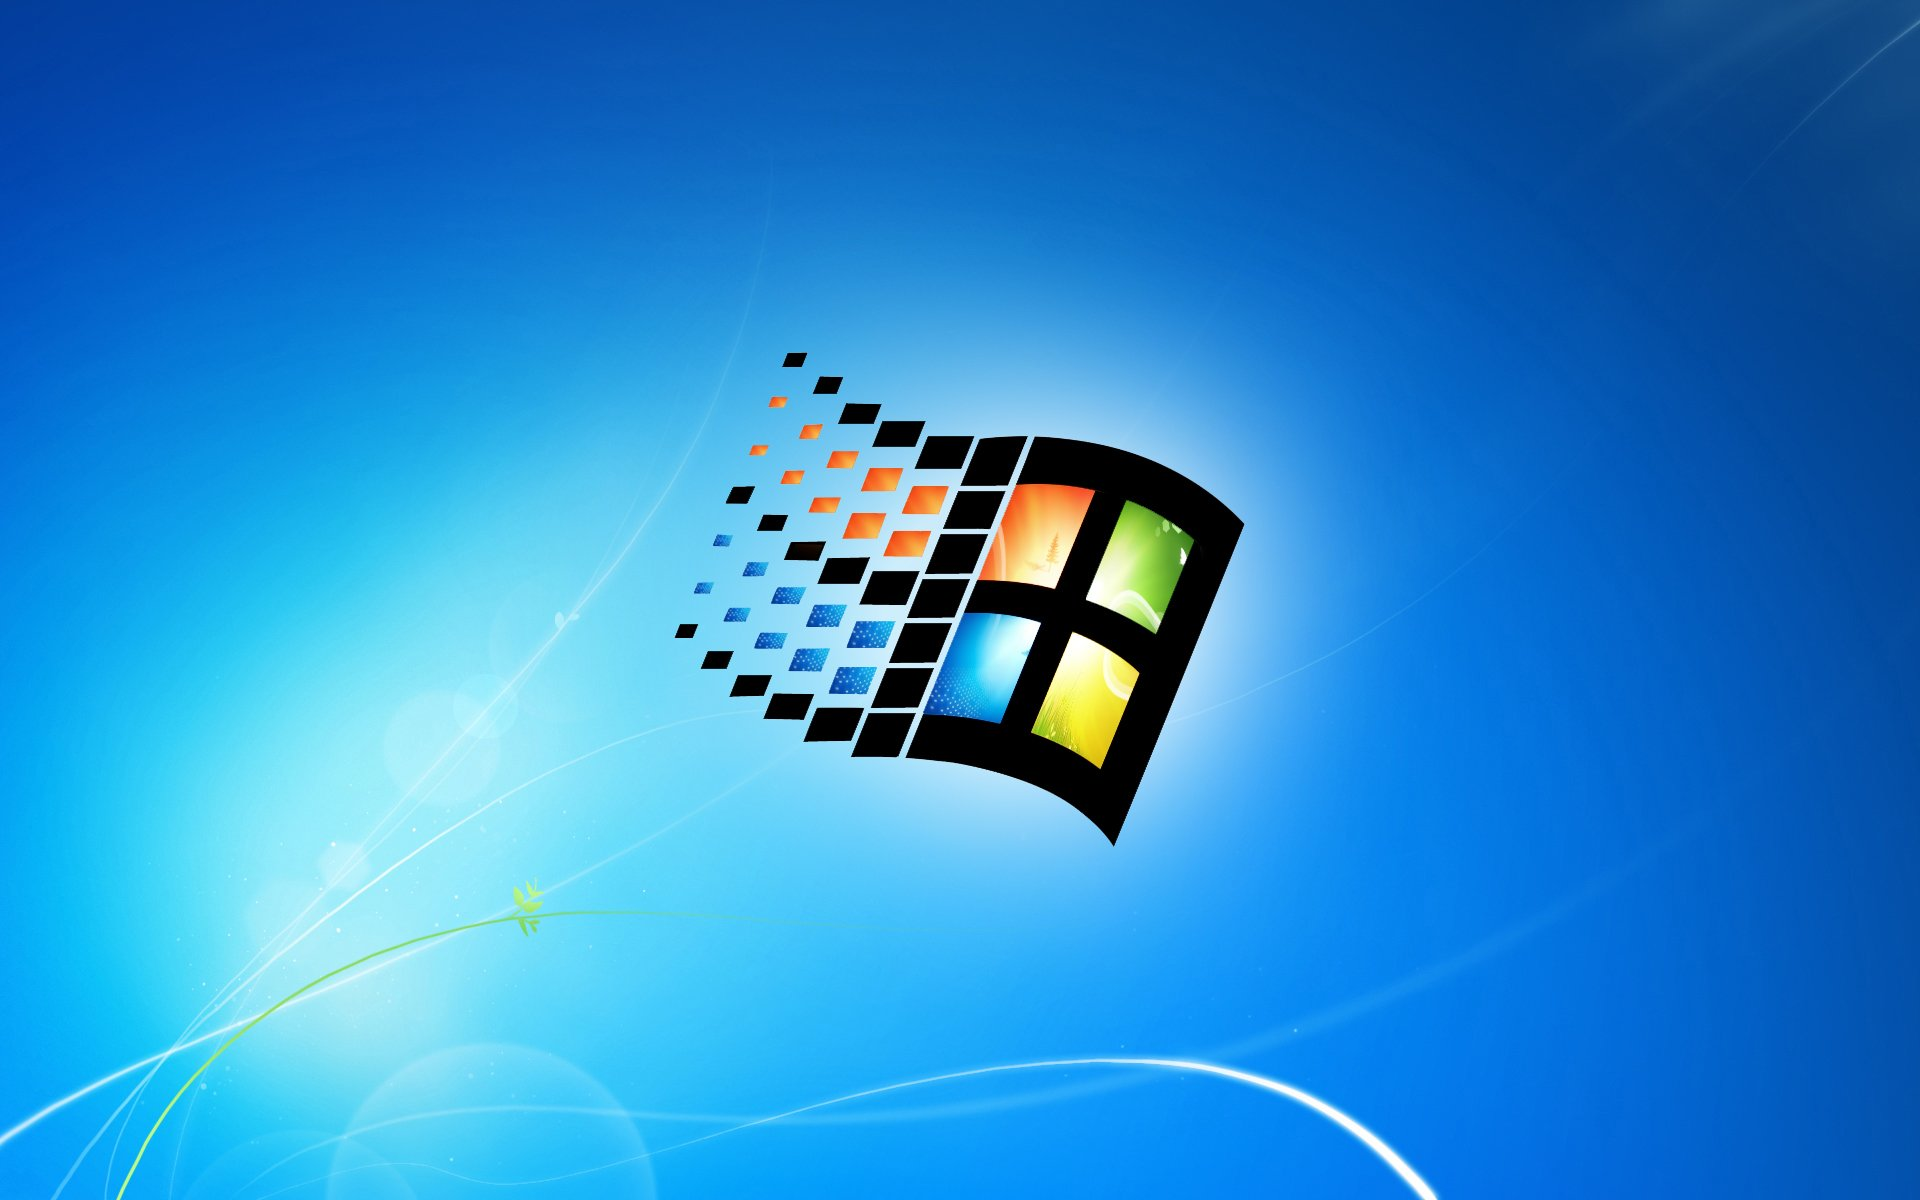 windows 7 classic by joediamond1992 customization wallpaper mac pc os 1920x1200